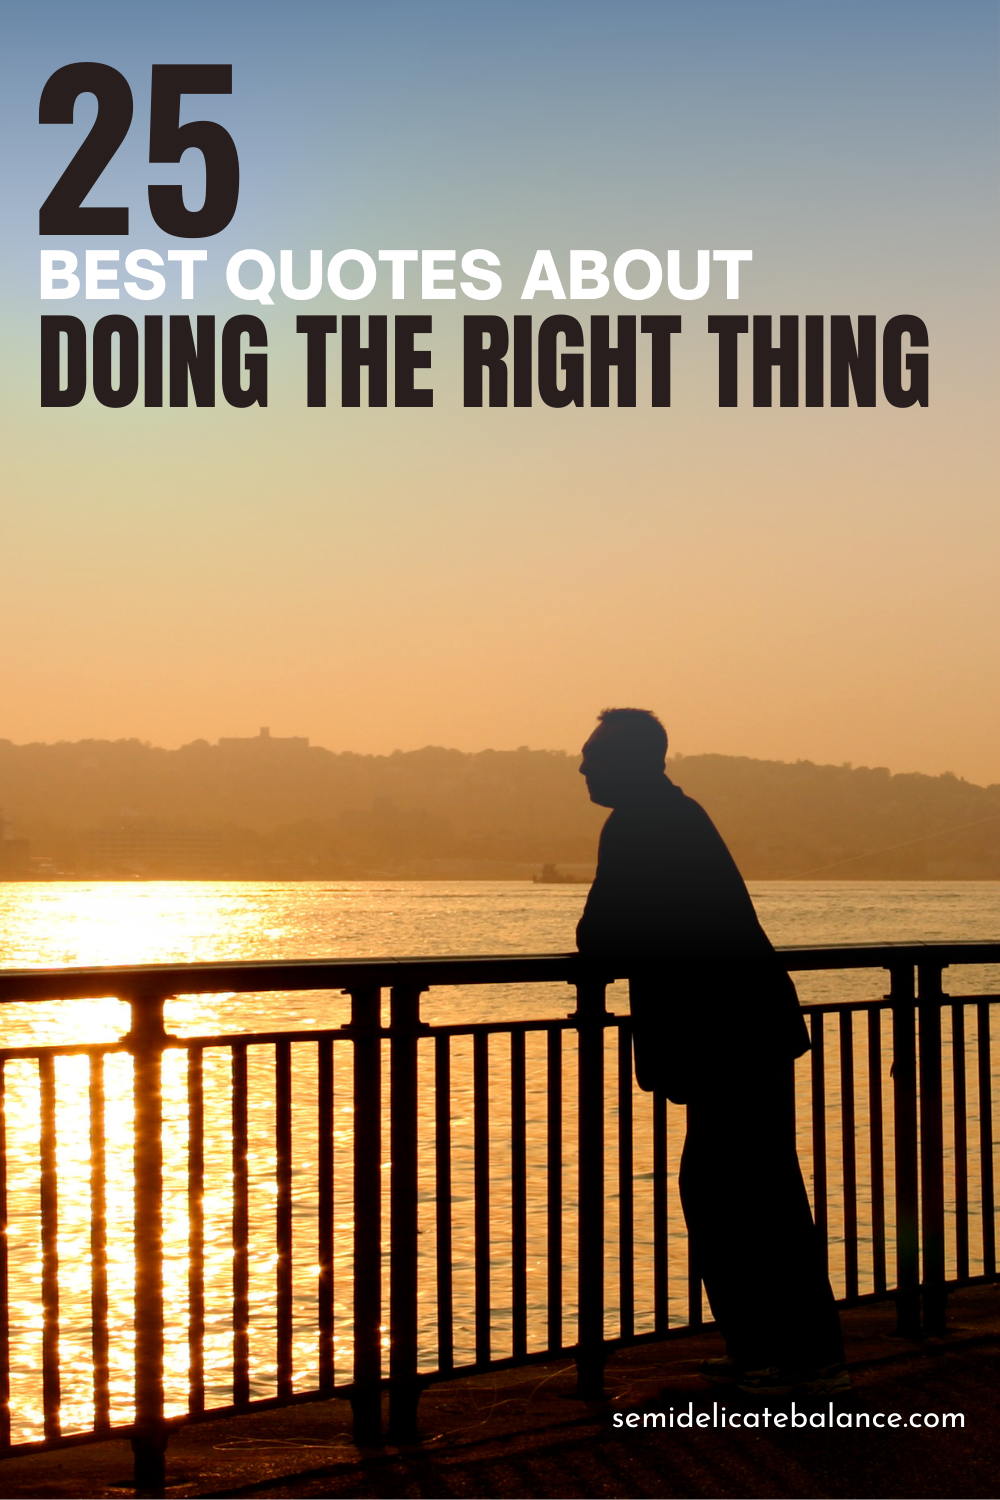 Best Quotes About Doing the Right Thing To Help Inspire You